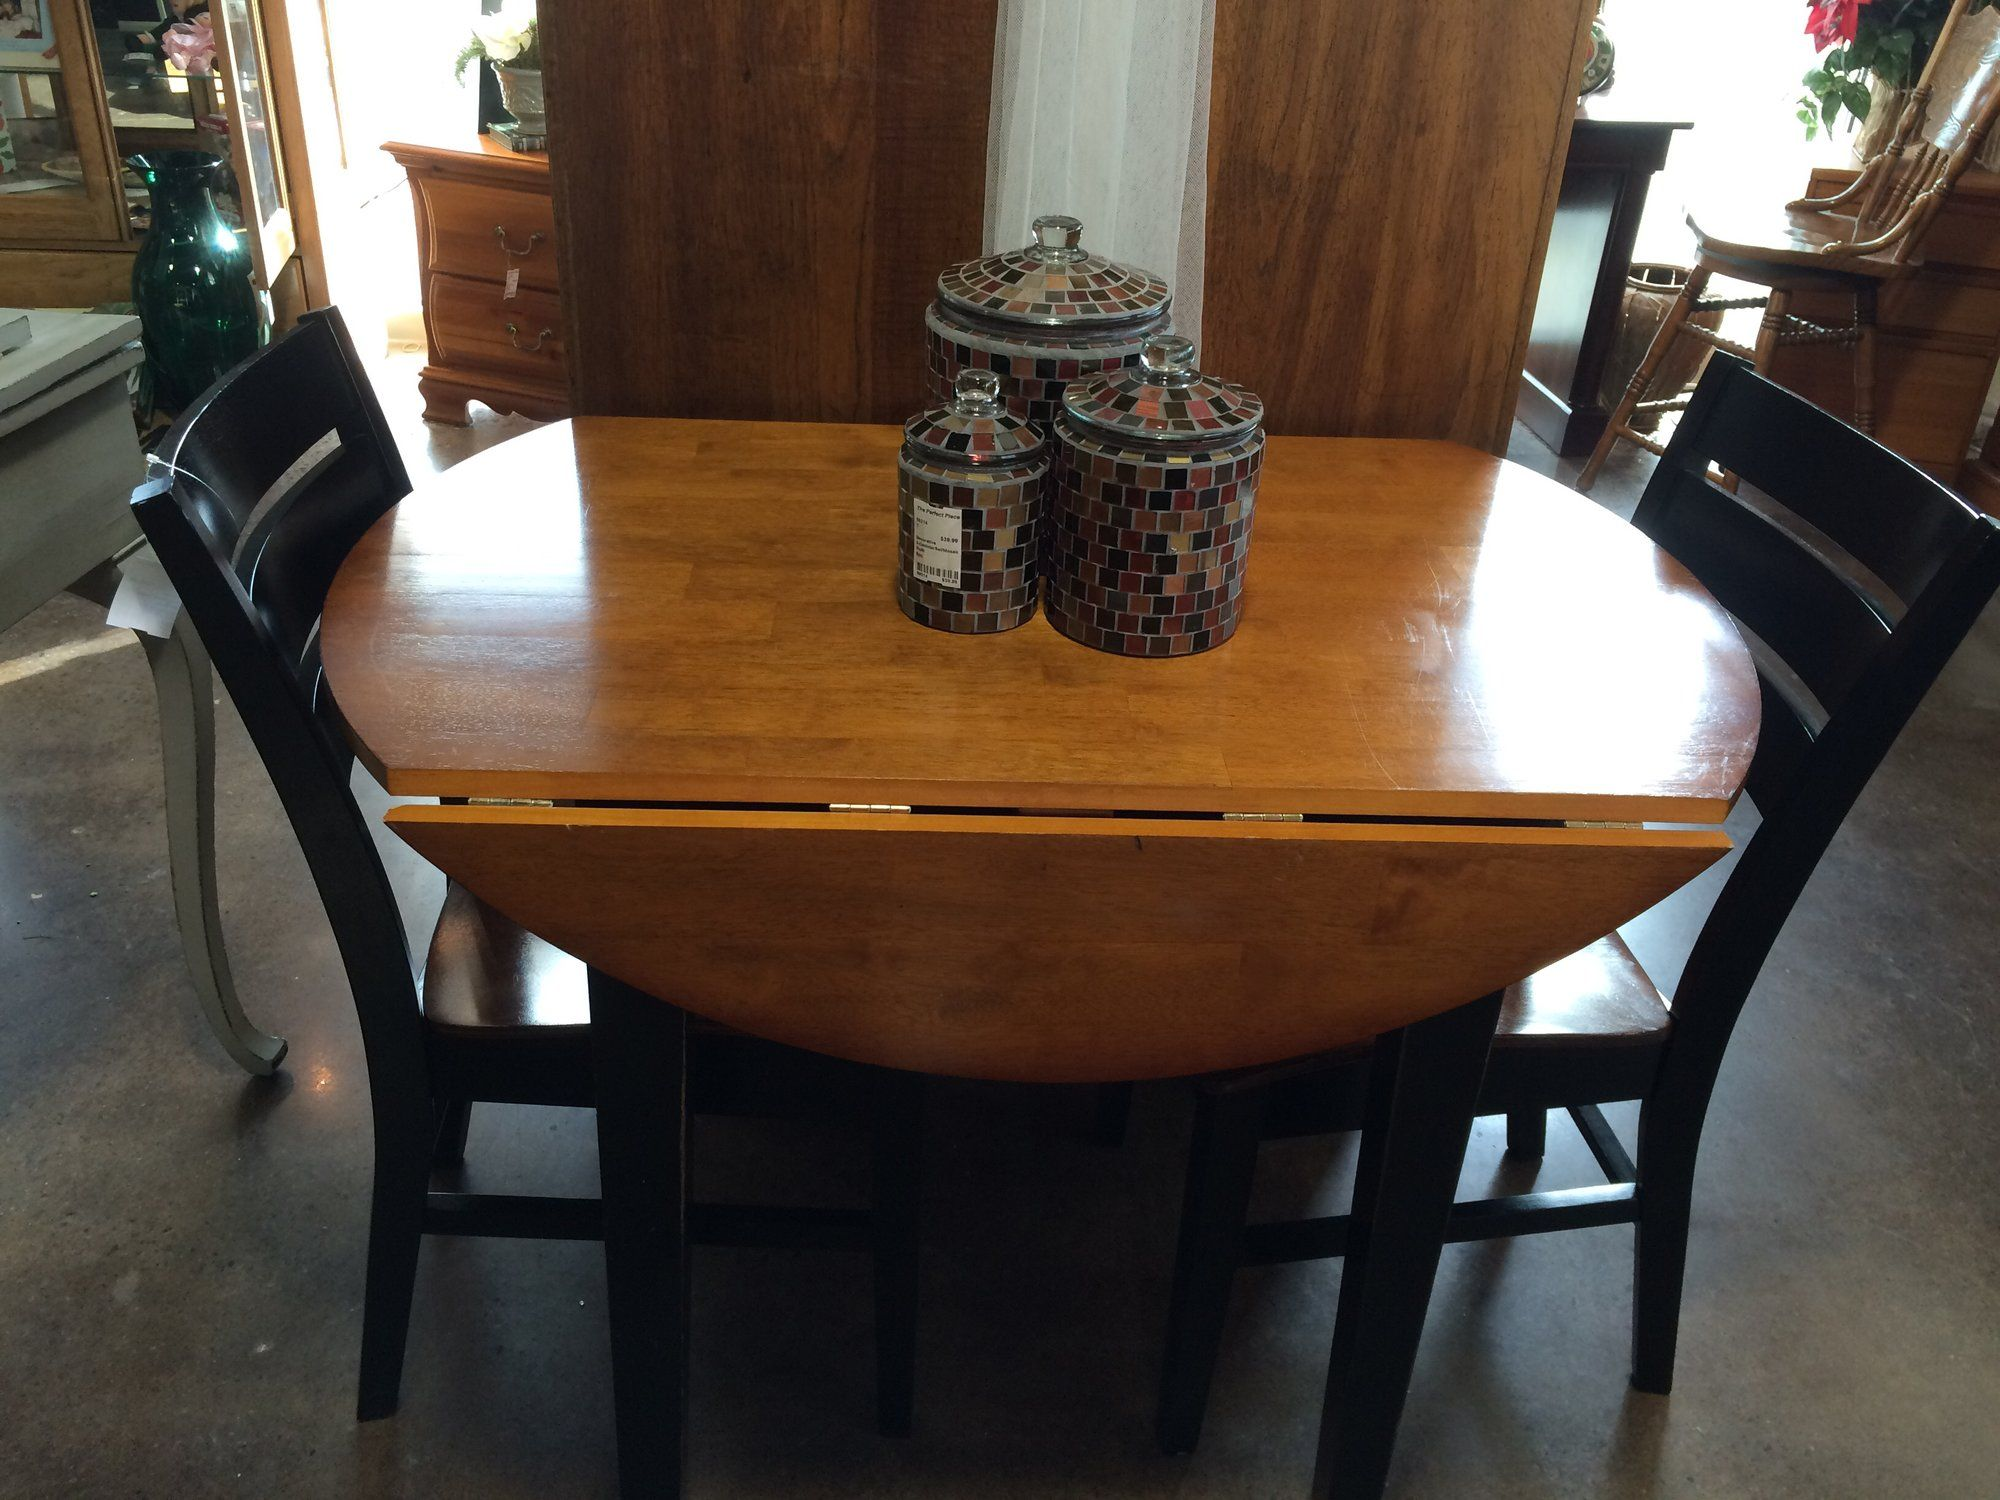 Dining Room Table With Drop Down Sides Extraordinary This Twotone Brown & Black Dropside Table & 2 Chairs Is Design Decoration